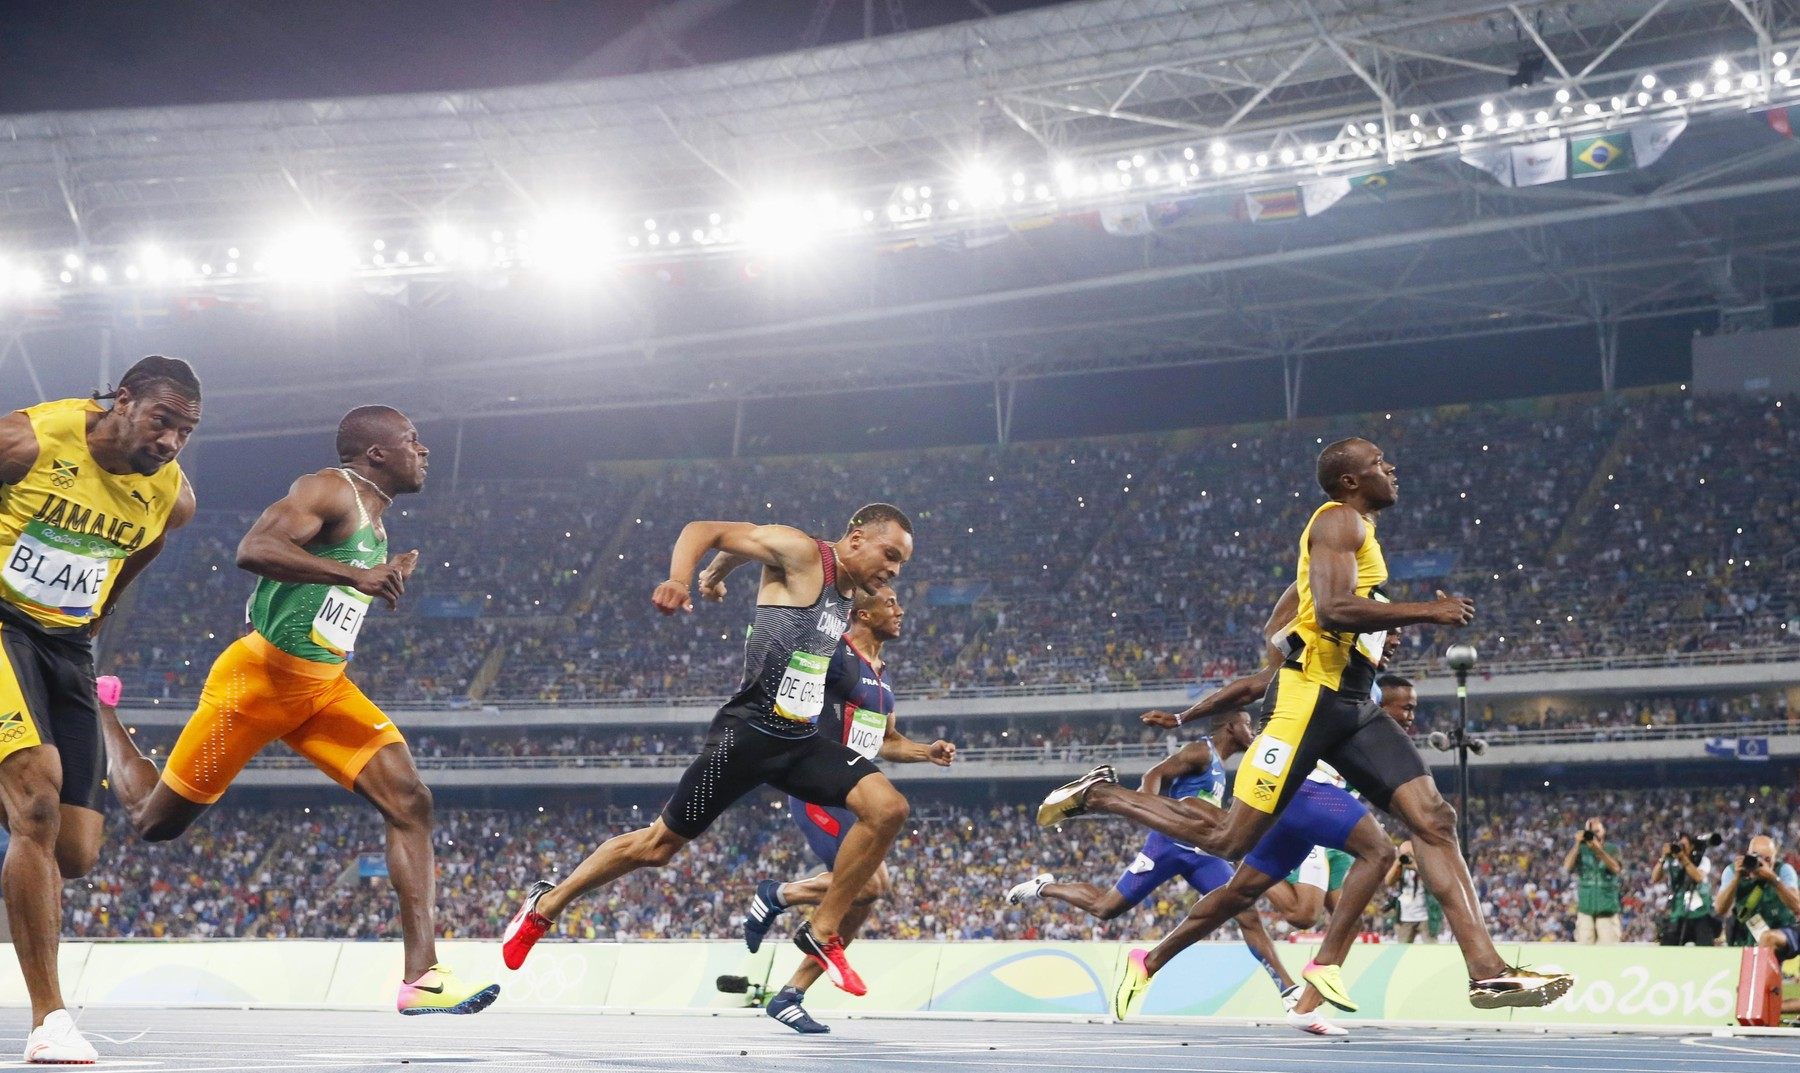 Olympics: Olympics: Bolt completes unprecedented 100m three-peat